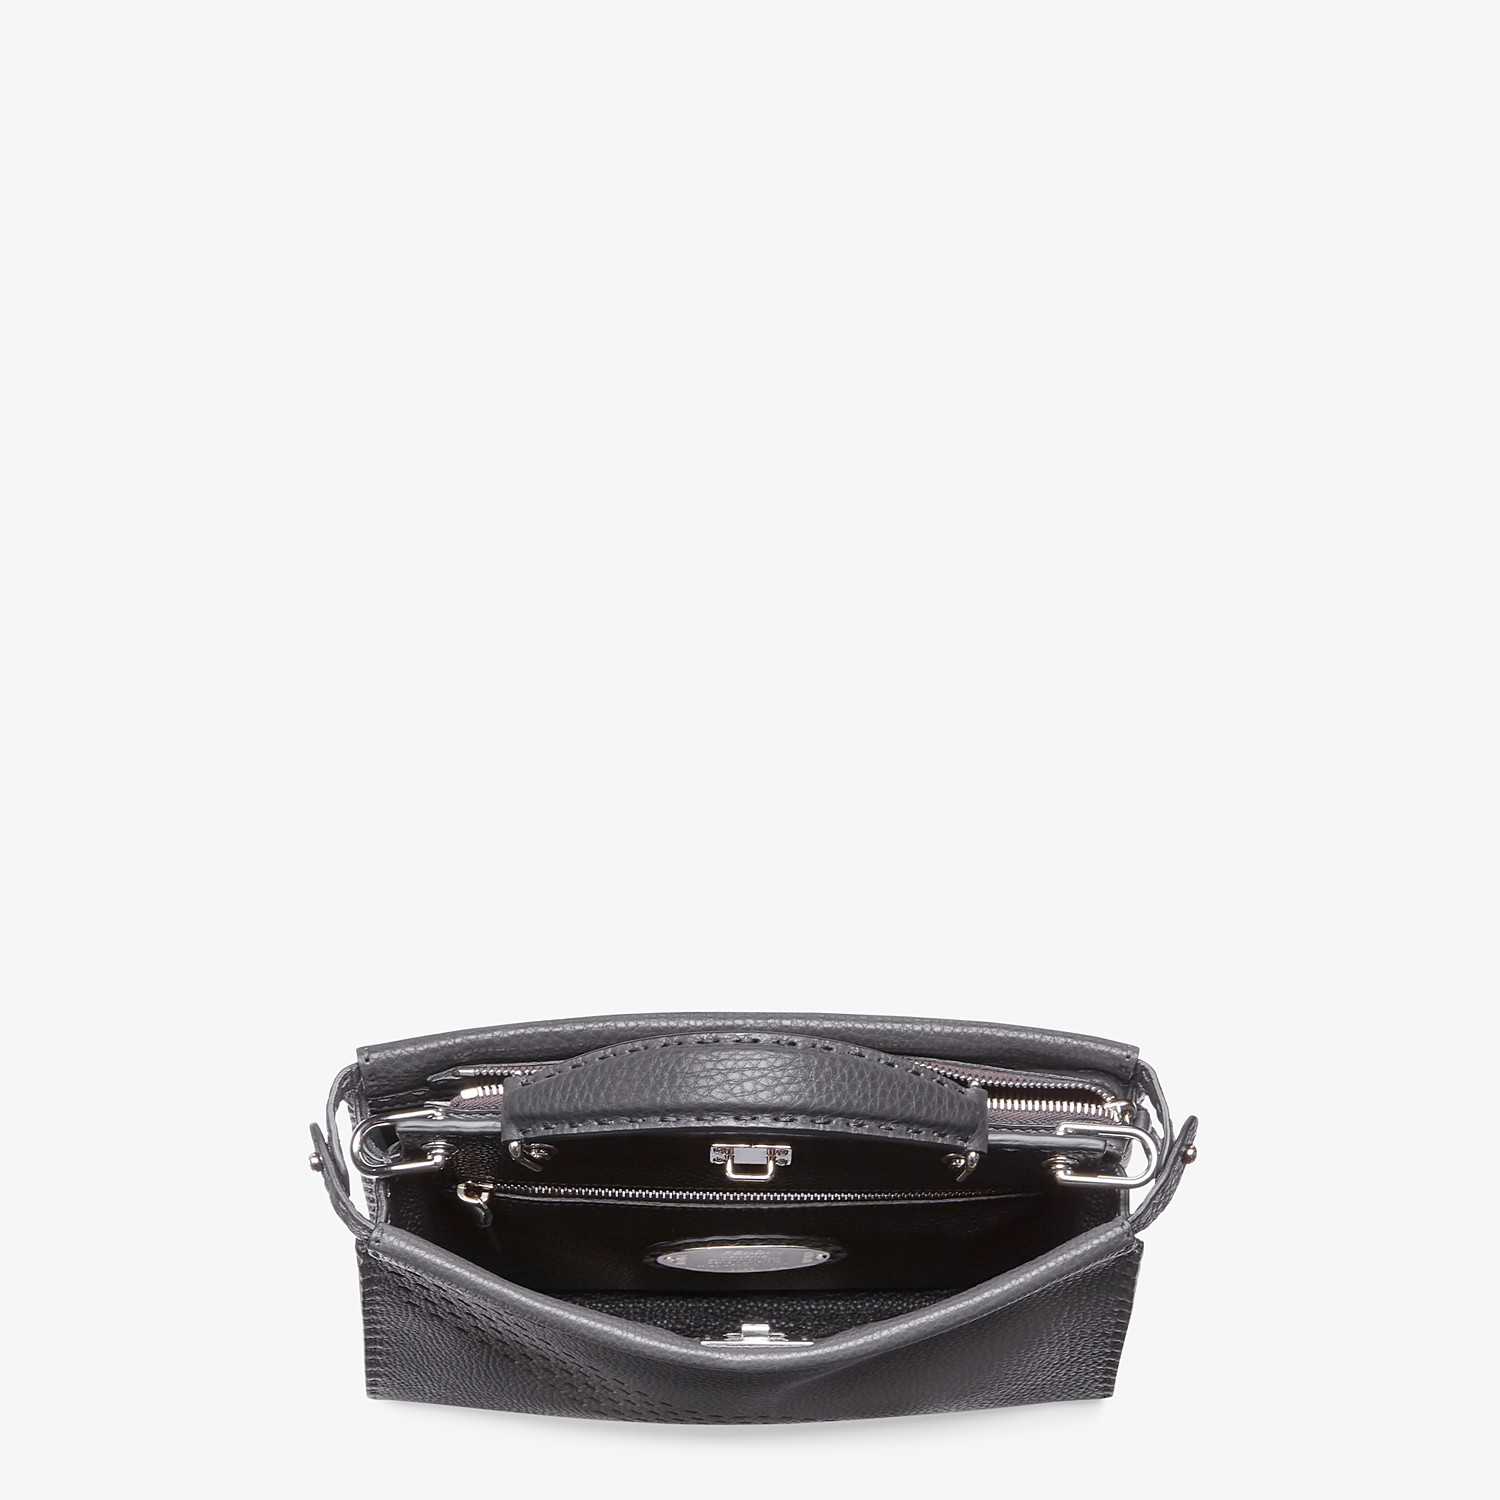 FENDI PEEKABOO ICONIC FIT MINI - Grey calf leather bag - view 4 detail